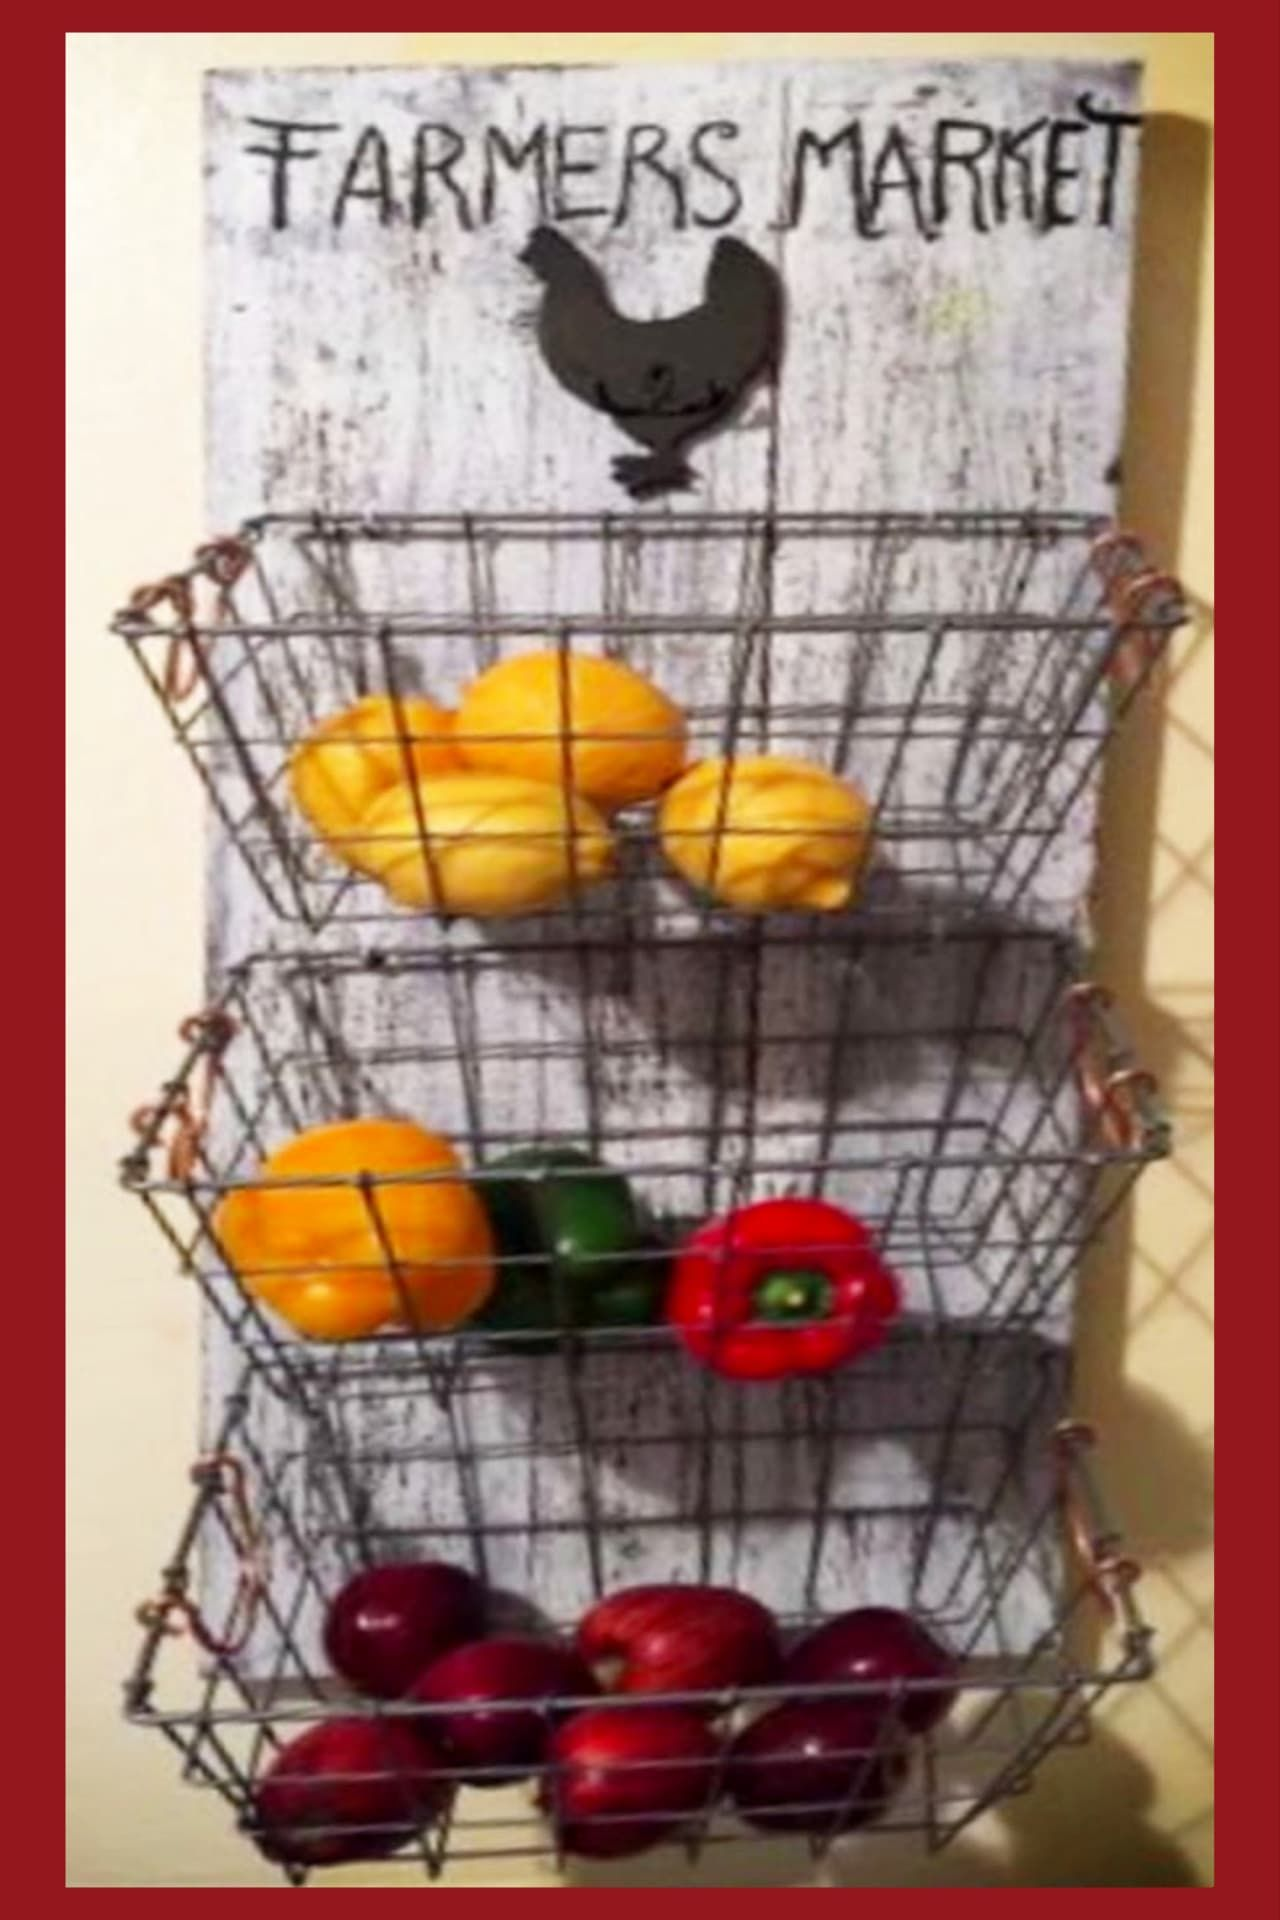 Diy Hanging Fruit Basket Ideas And Pictures Unique And Easy Wall Mounted Fruit Baskets Hanging Fruit Baskets Fruit Storage Diy Pallet Projects